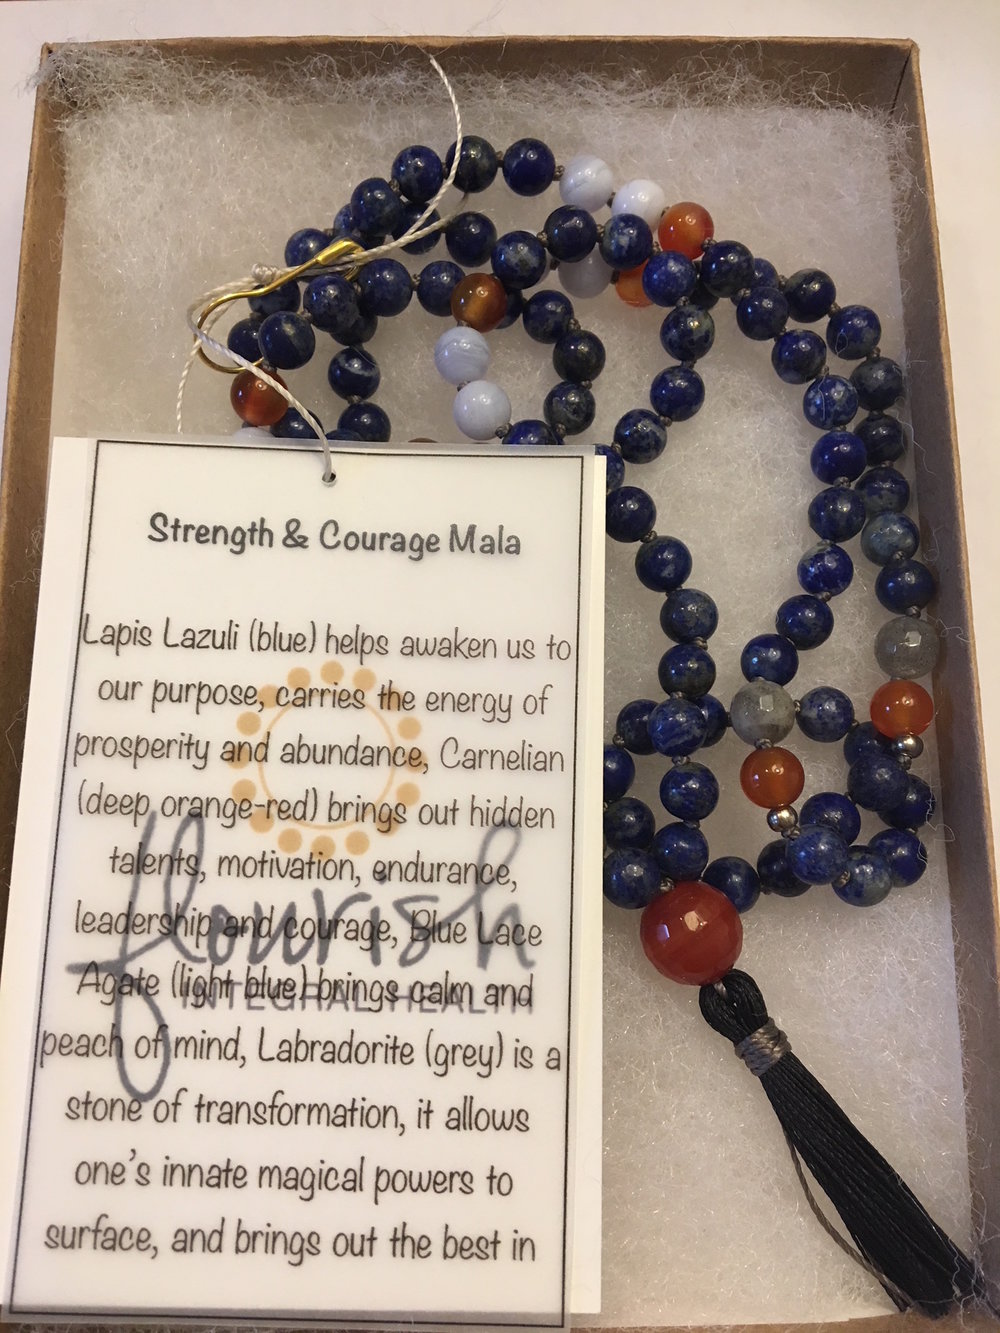 Strength & Courage Mala  (6mm)  Lapis Lazuli (blue) helps awaken us to our purpose, carries the energy of prosperity and abundance, Carnelian (deep orange-red) brings out hidden talents, motivation, endurance, leadership and courage, Blue Lace Agate (light blue) brings calm and peach of mind, Labradorite (grey) is a stone of transformation, it allows one's innate magical powers to surface, and brings out the best in people.